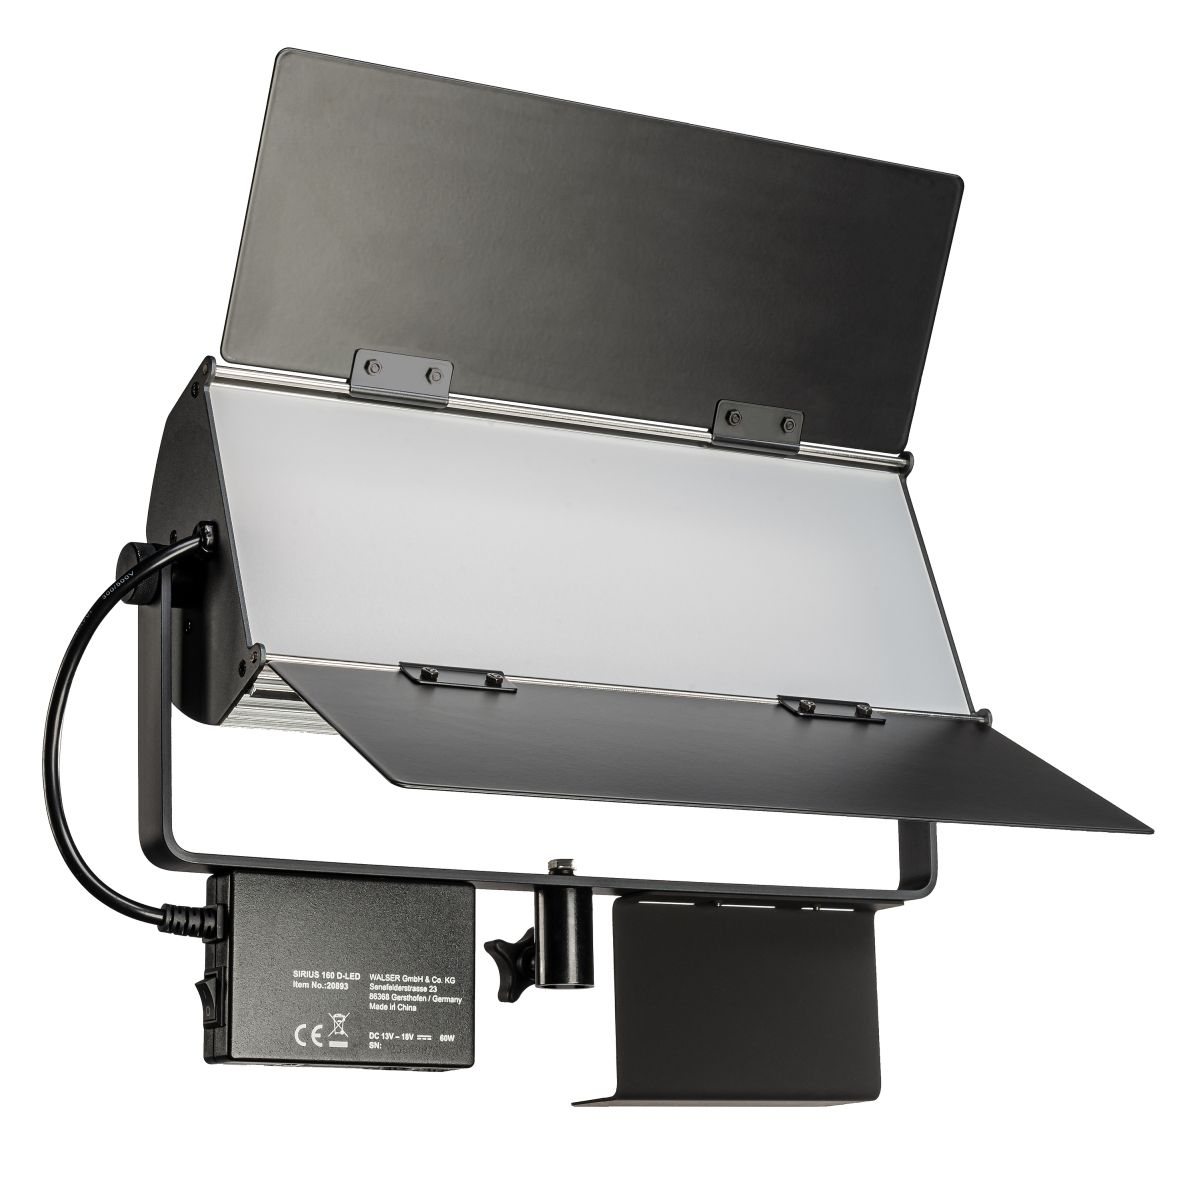 Walimex pro LED Sirius 160 Daylight 65W - Set inkl....